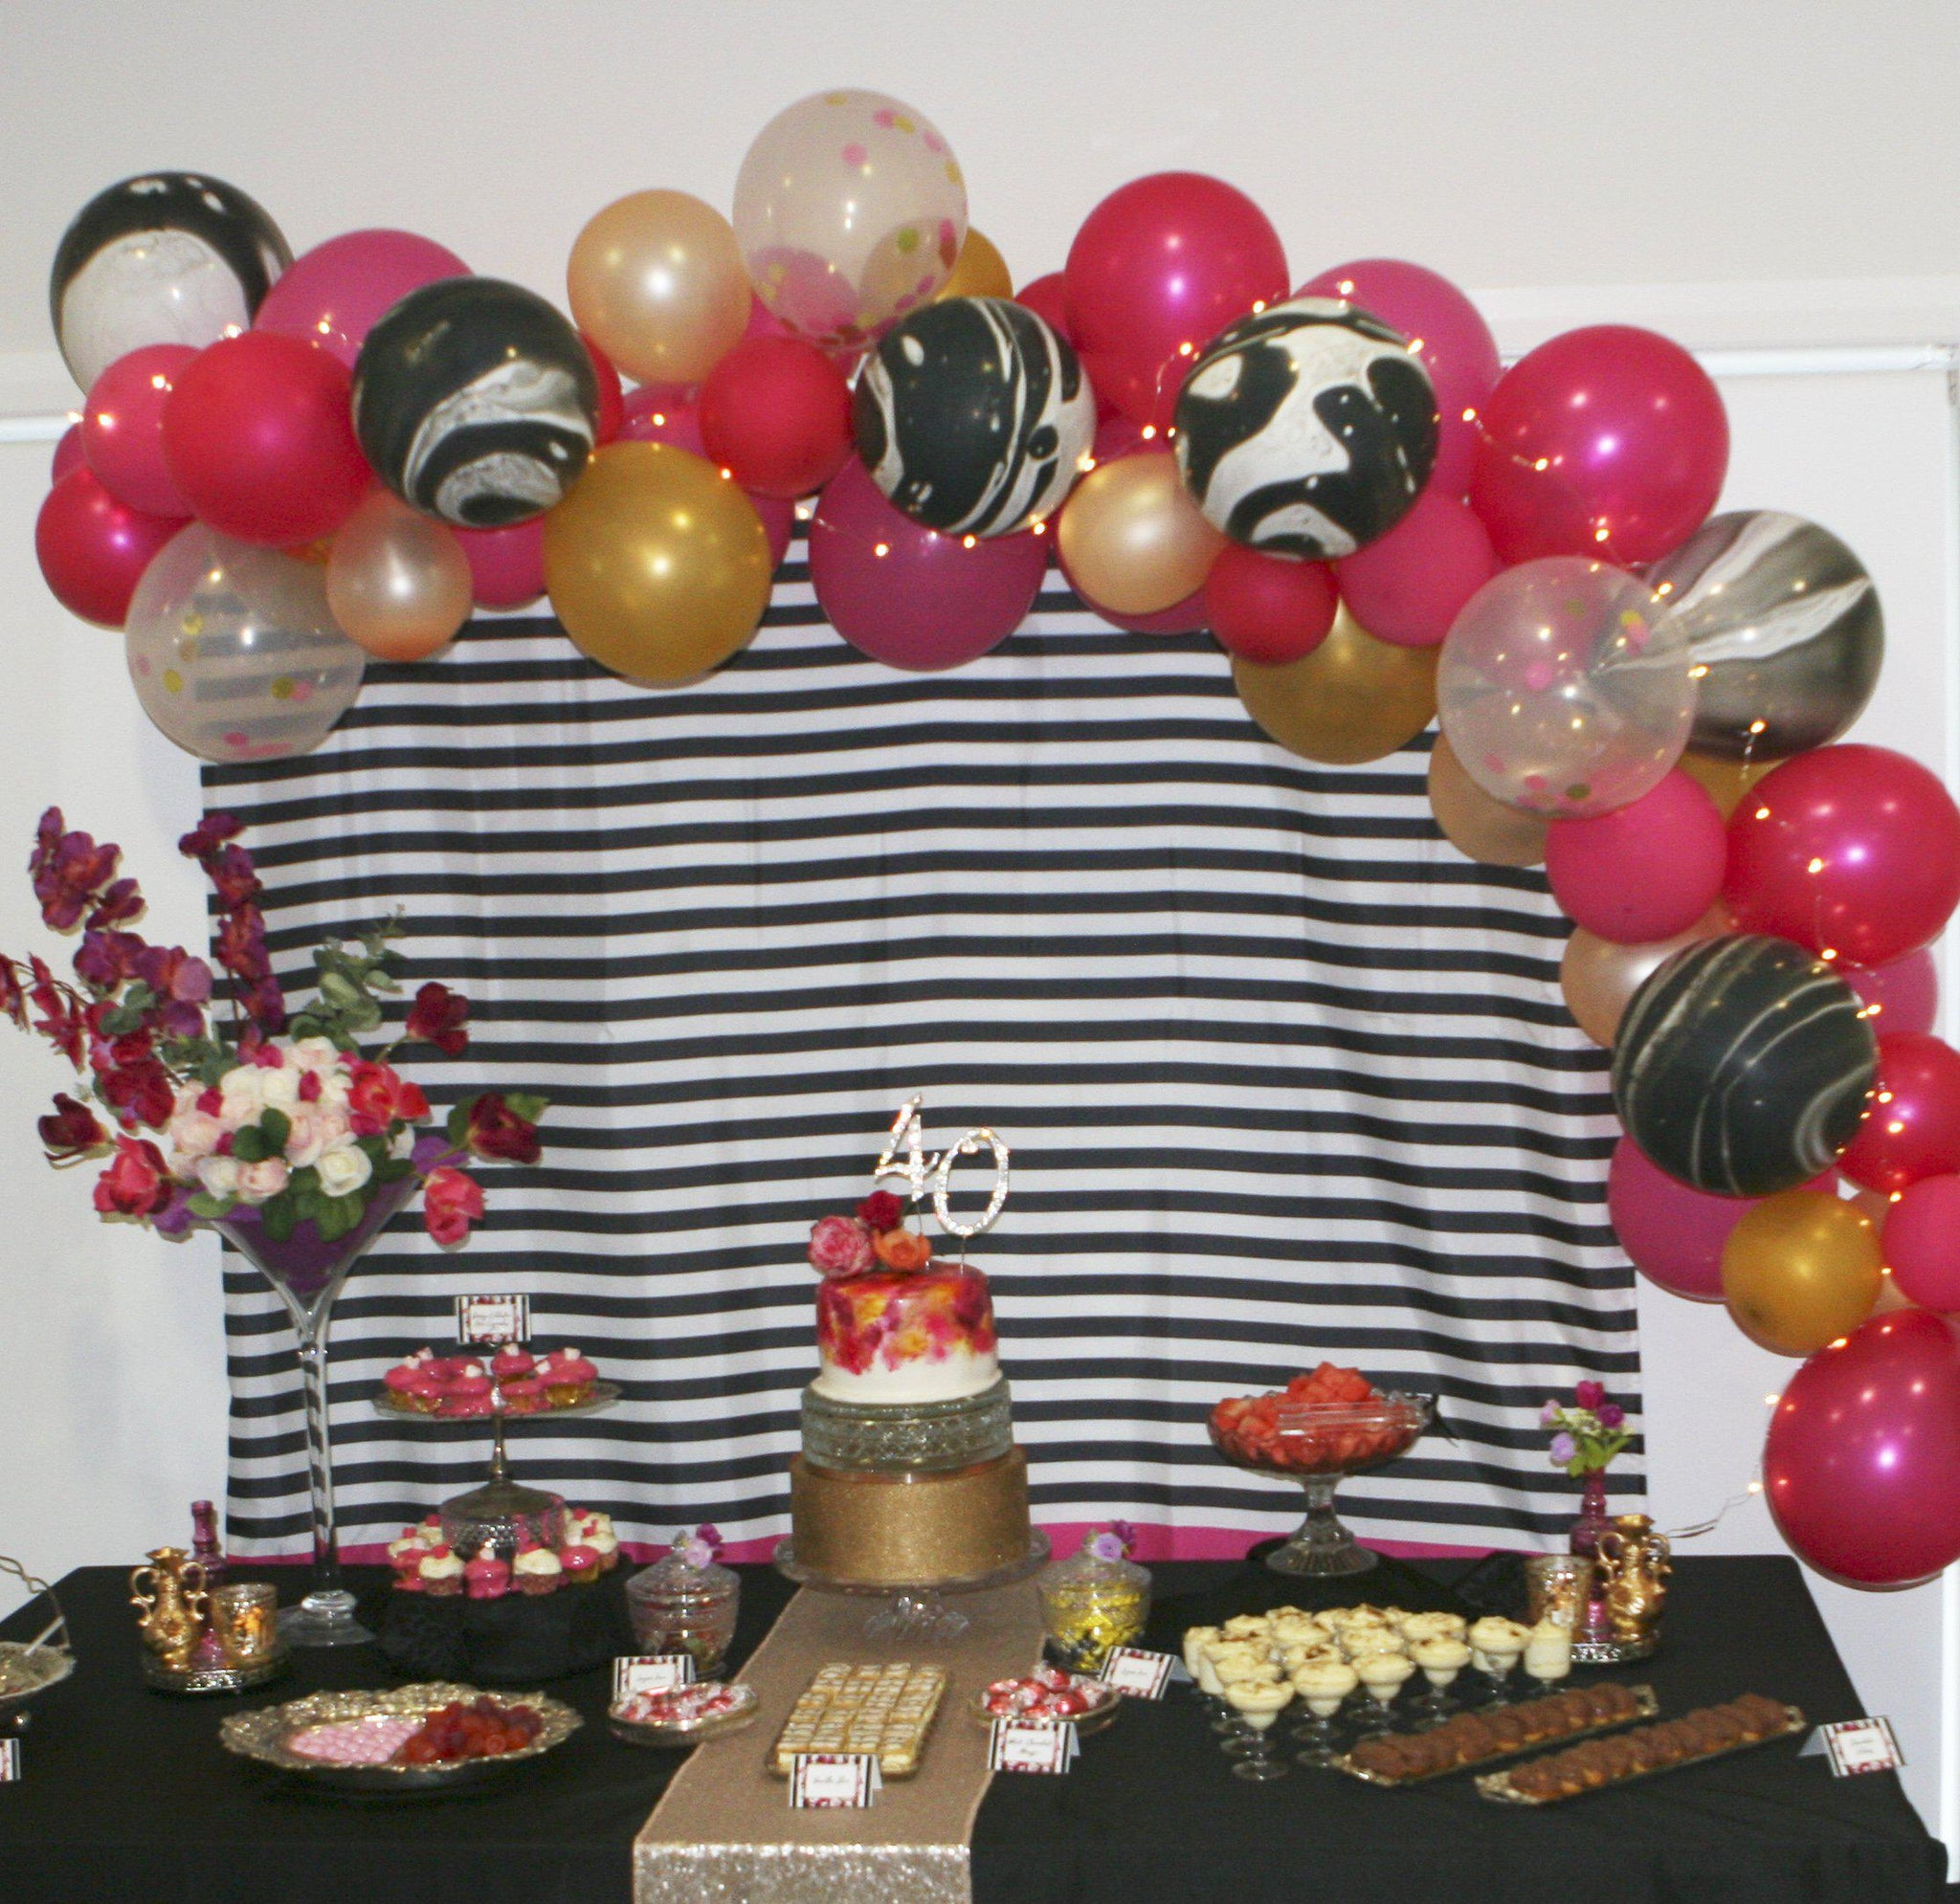 Lolly table or Dessert table setup